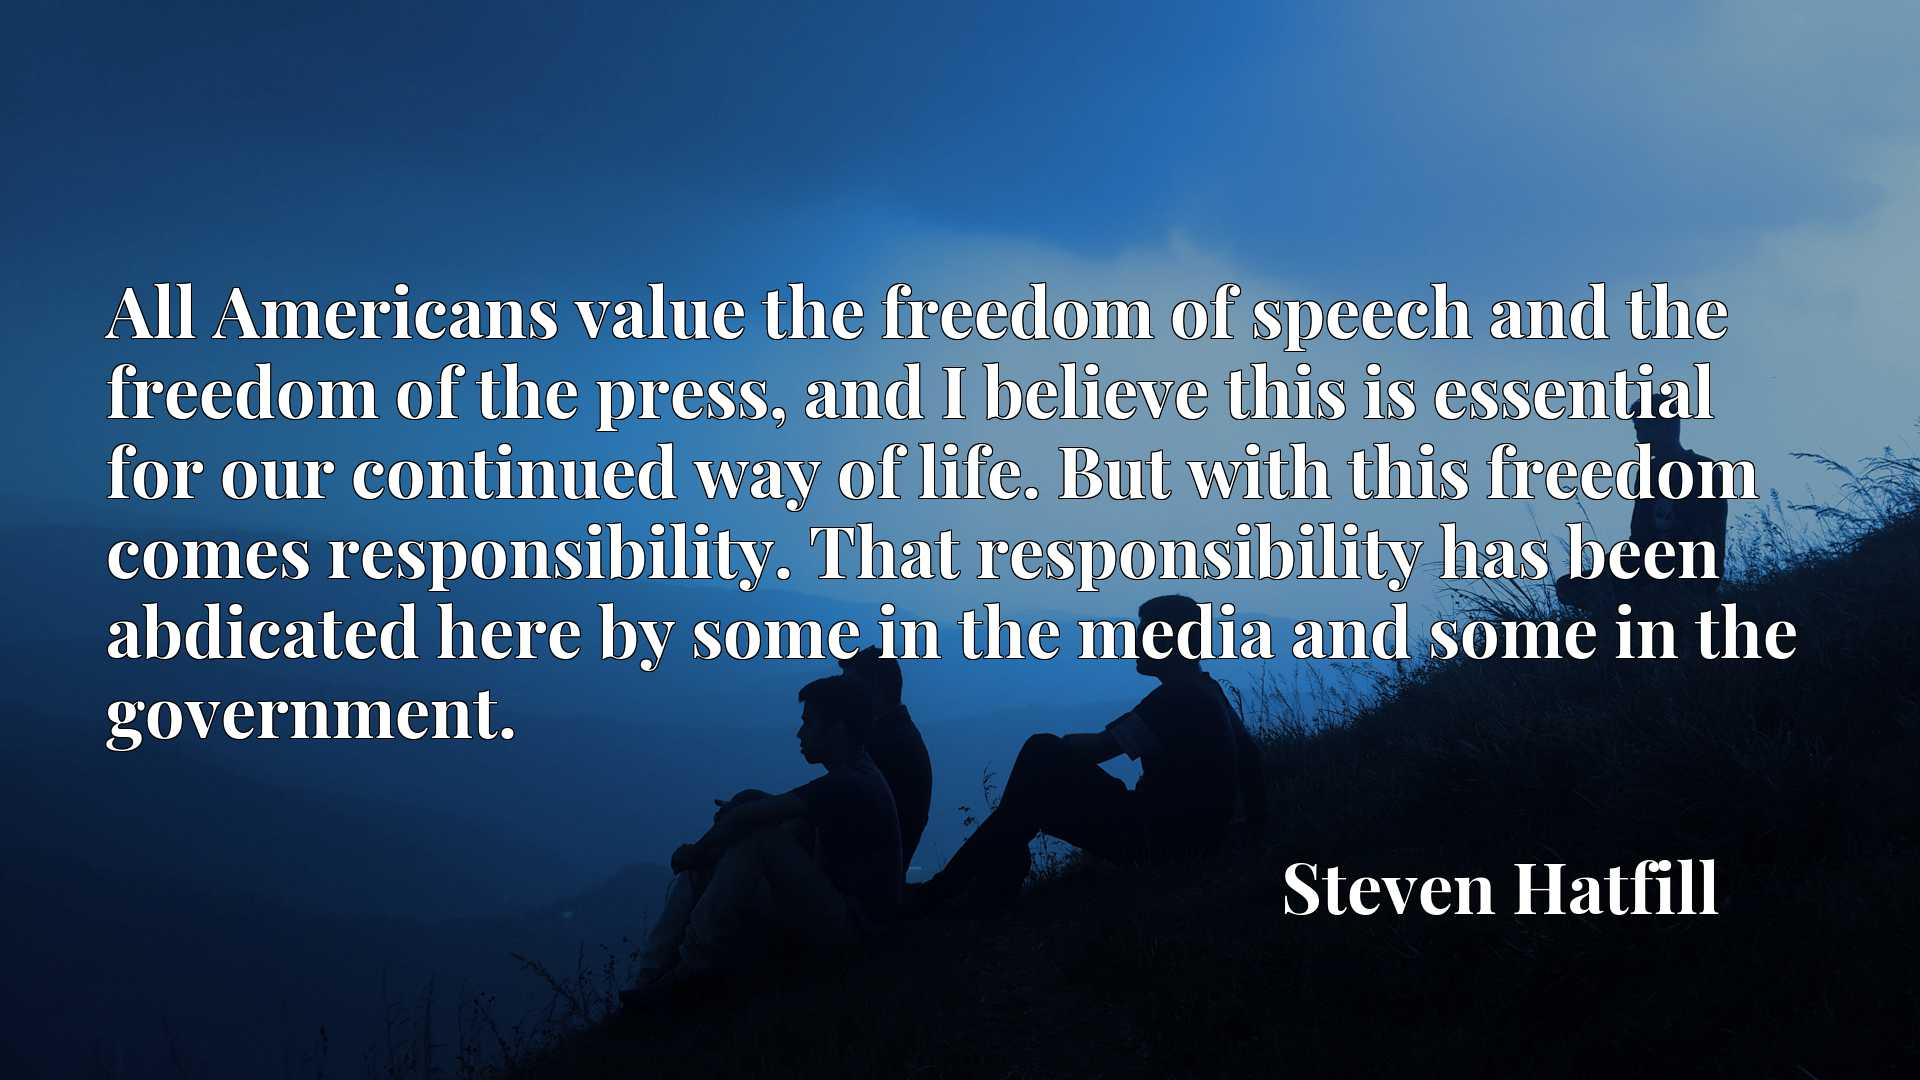 All Americans value the freedom of speech and the freedom of the press, and I believe this is essential for our continued way of life. But with this freedom comes responsibility. That responsibility has been abdicated here by some in the media and some in the government.